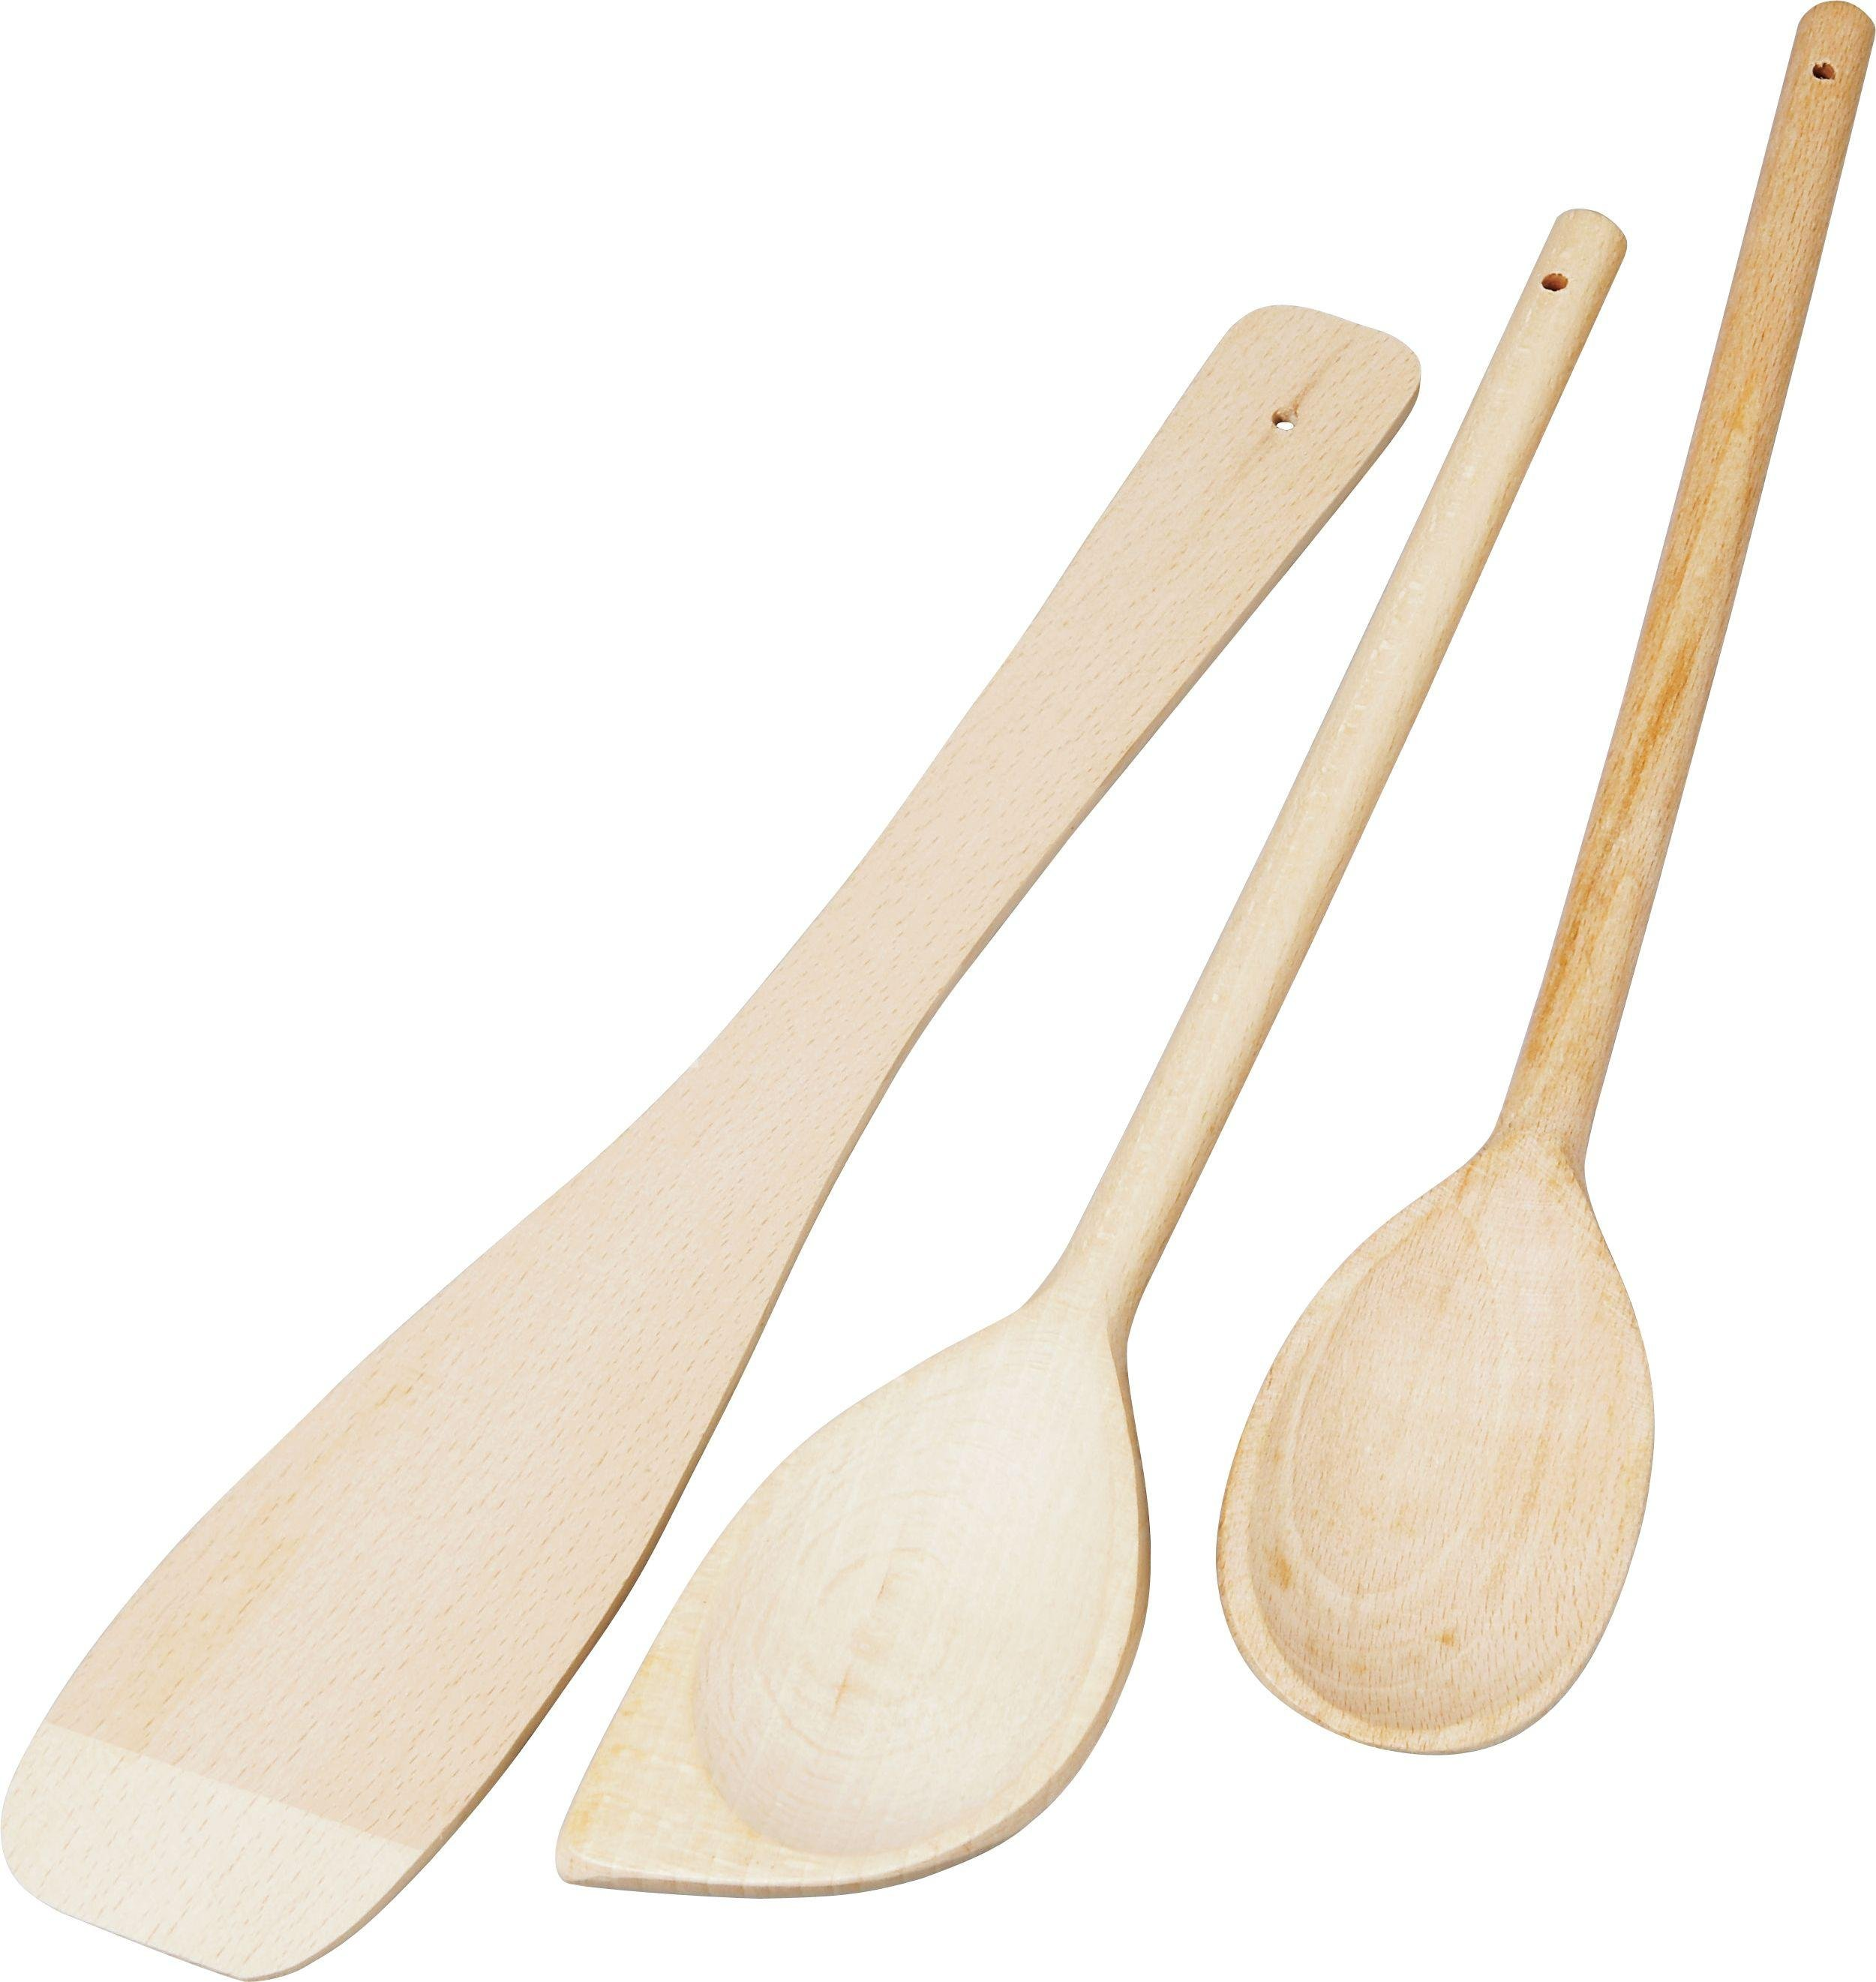 HOME - Wooden 3 Piece Kitchen Utensils Set